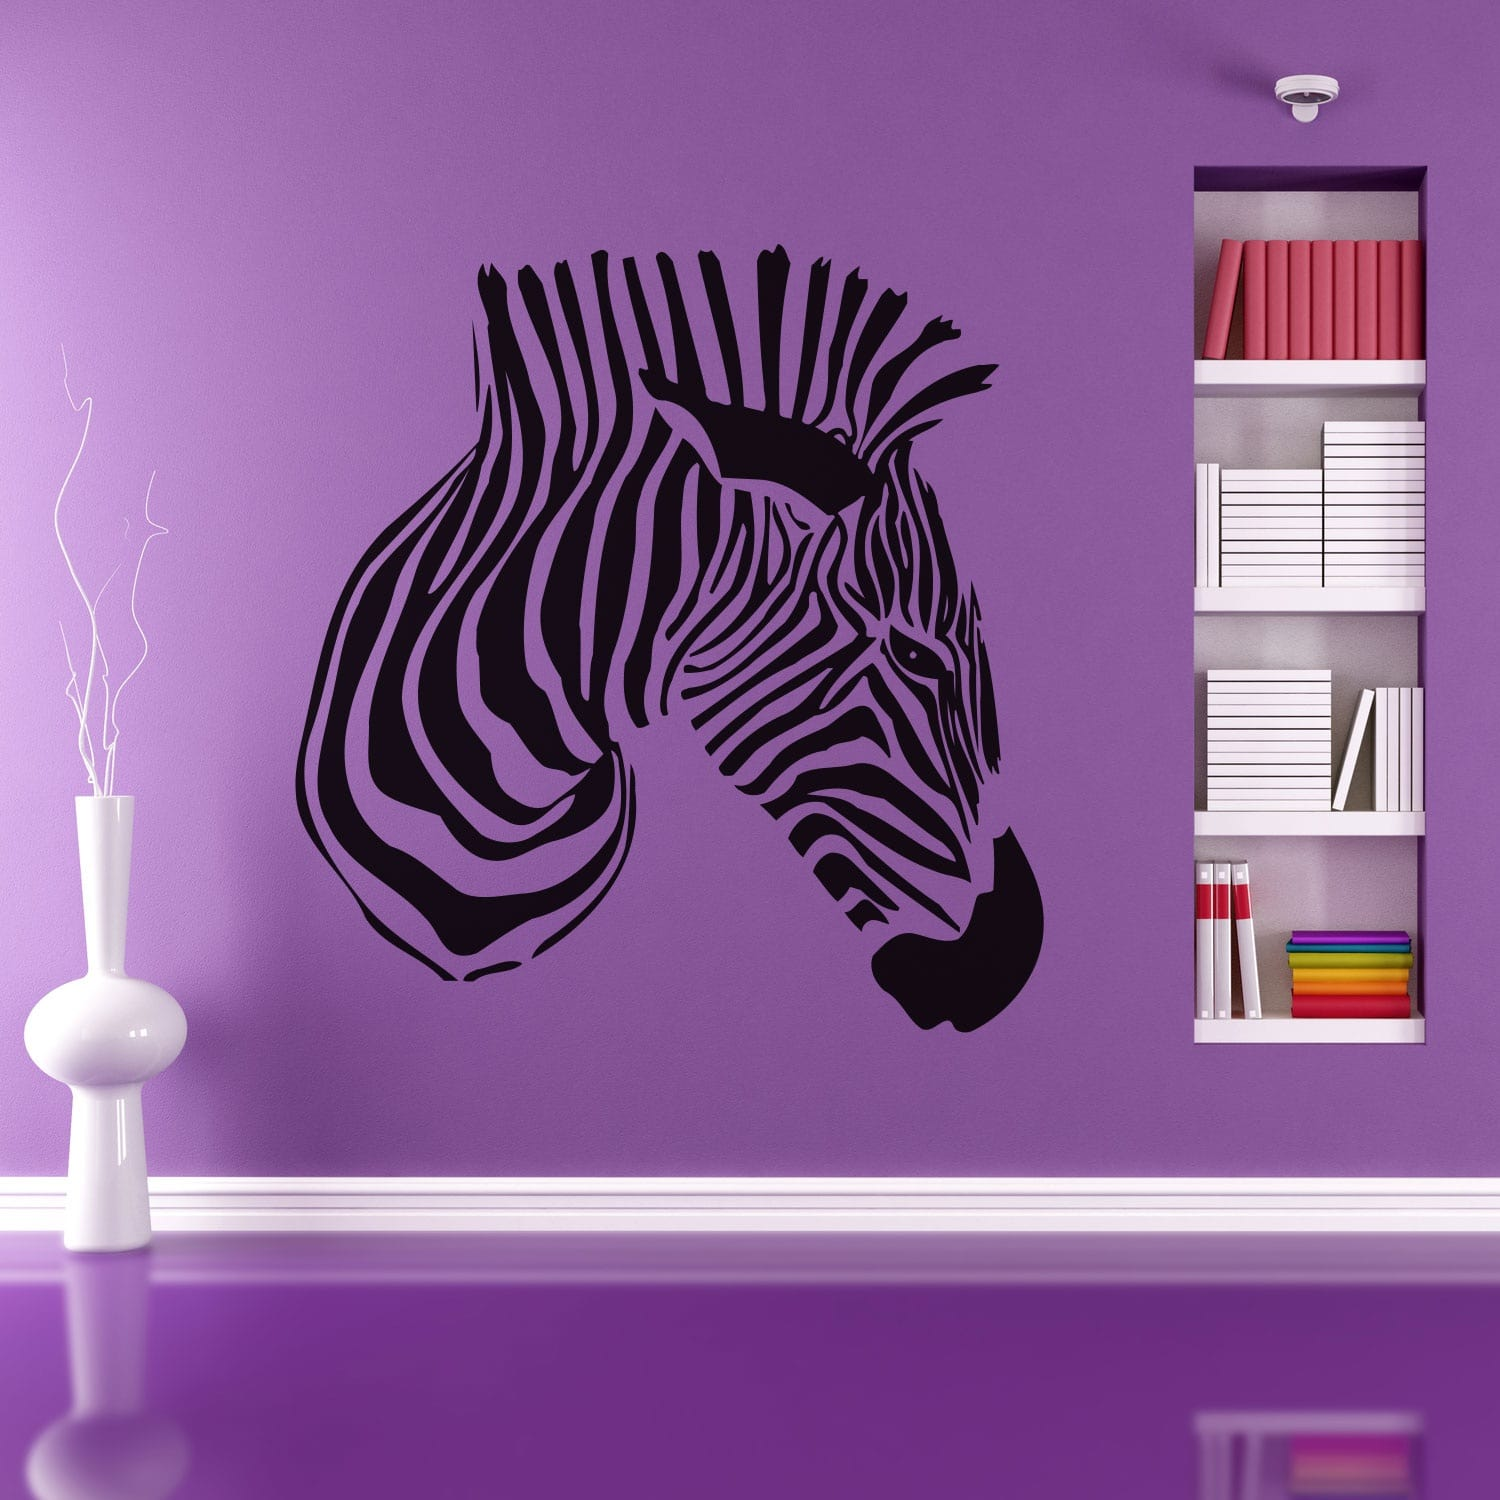 Wallsticker Cool Zebra